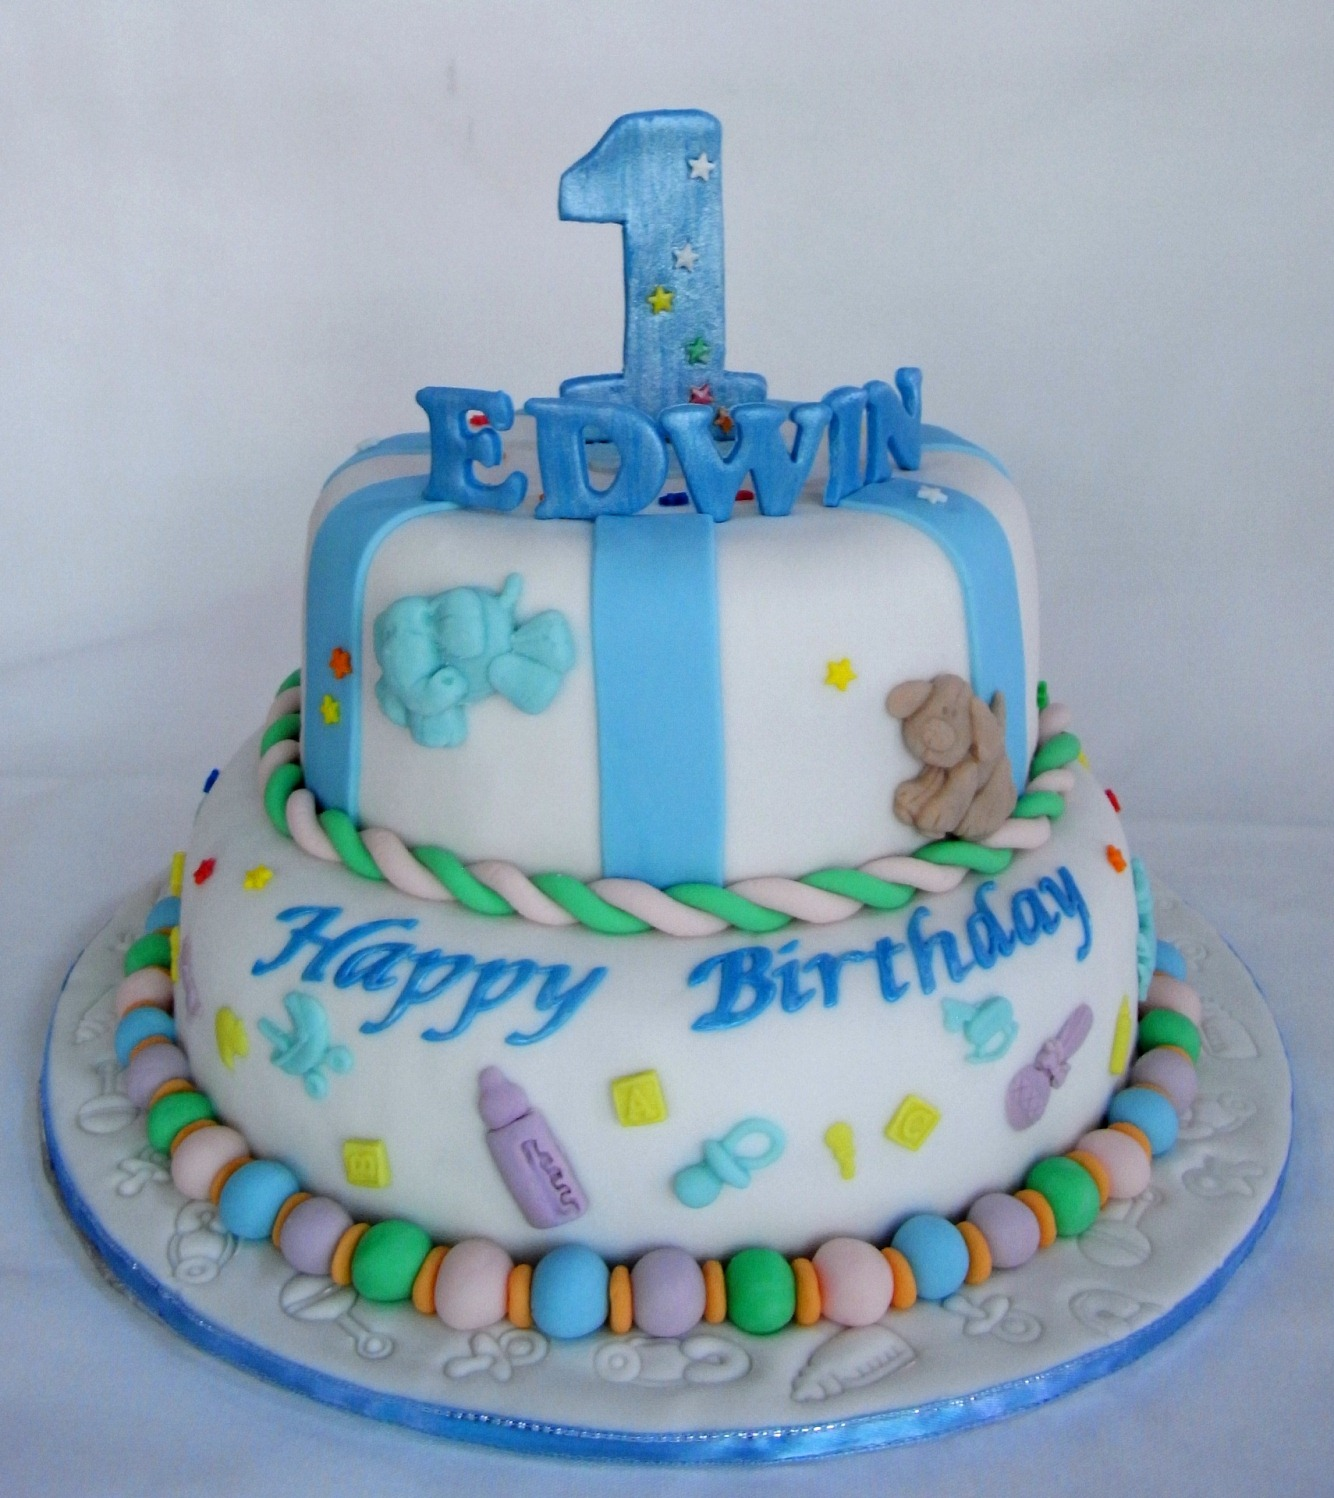 Bearylicious Cakes: Colorful 1st Birthday Cake